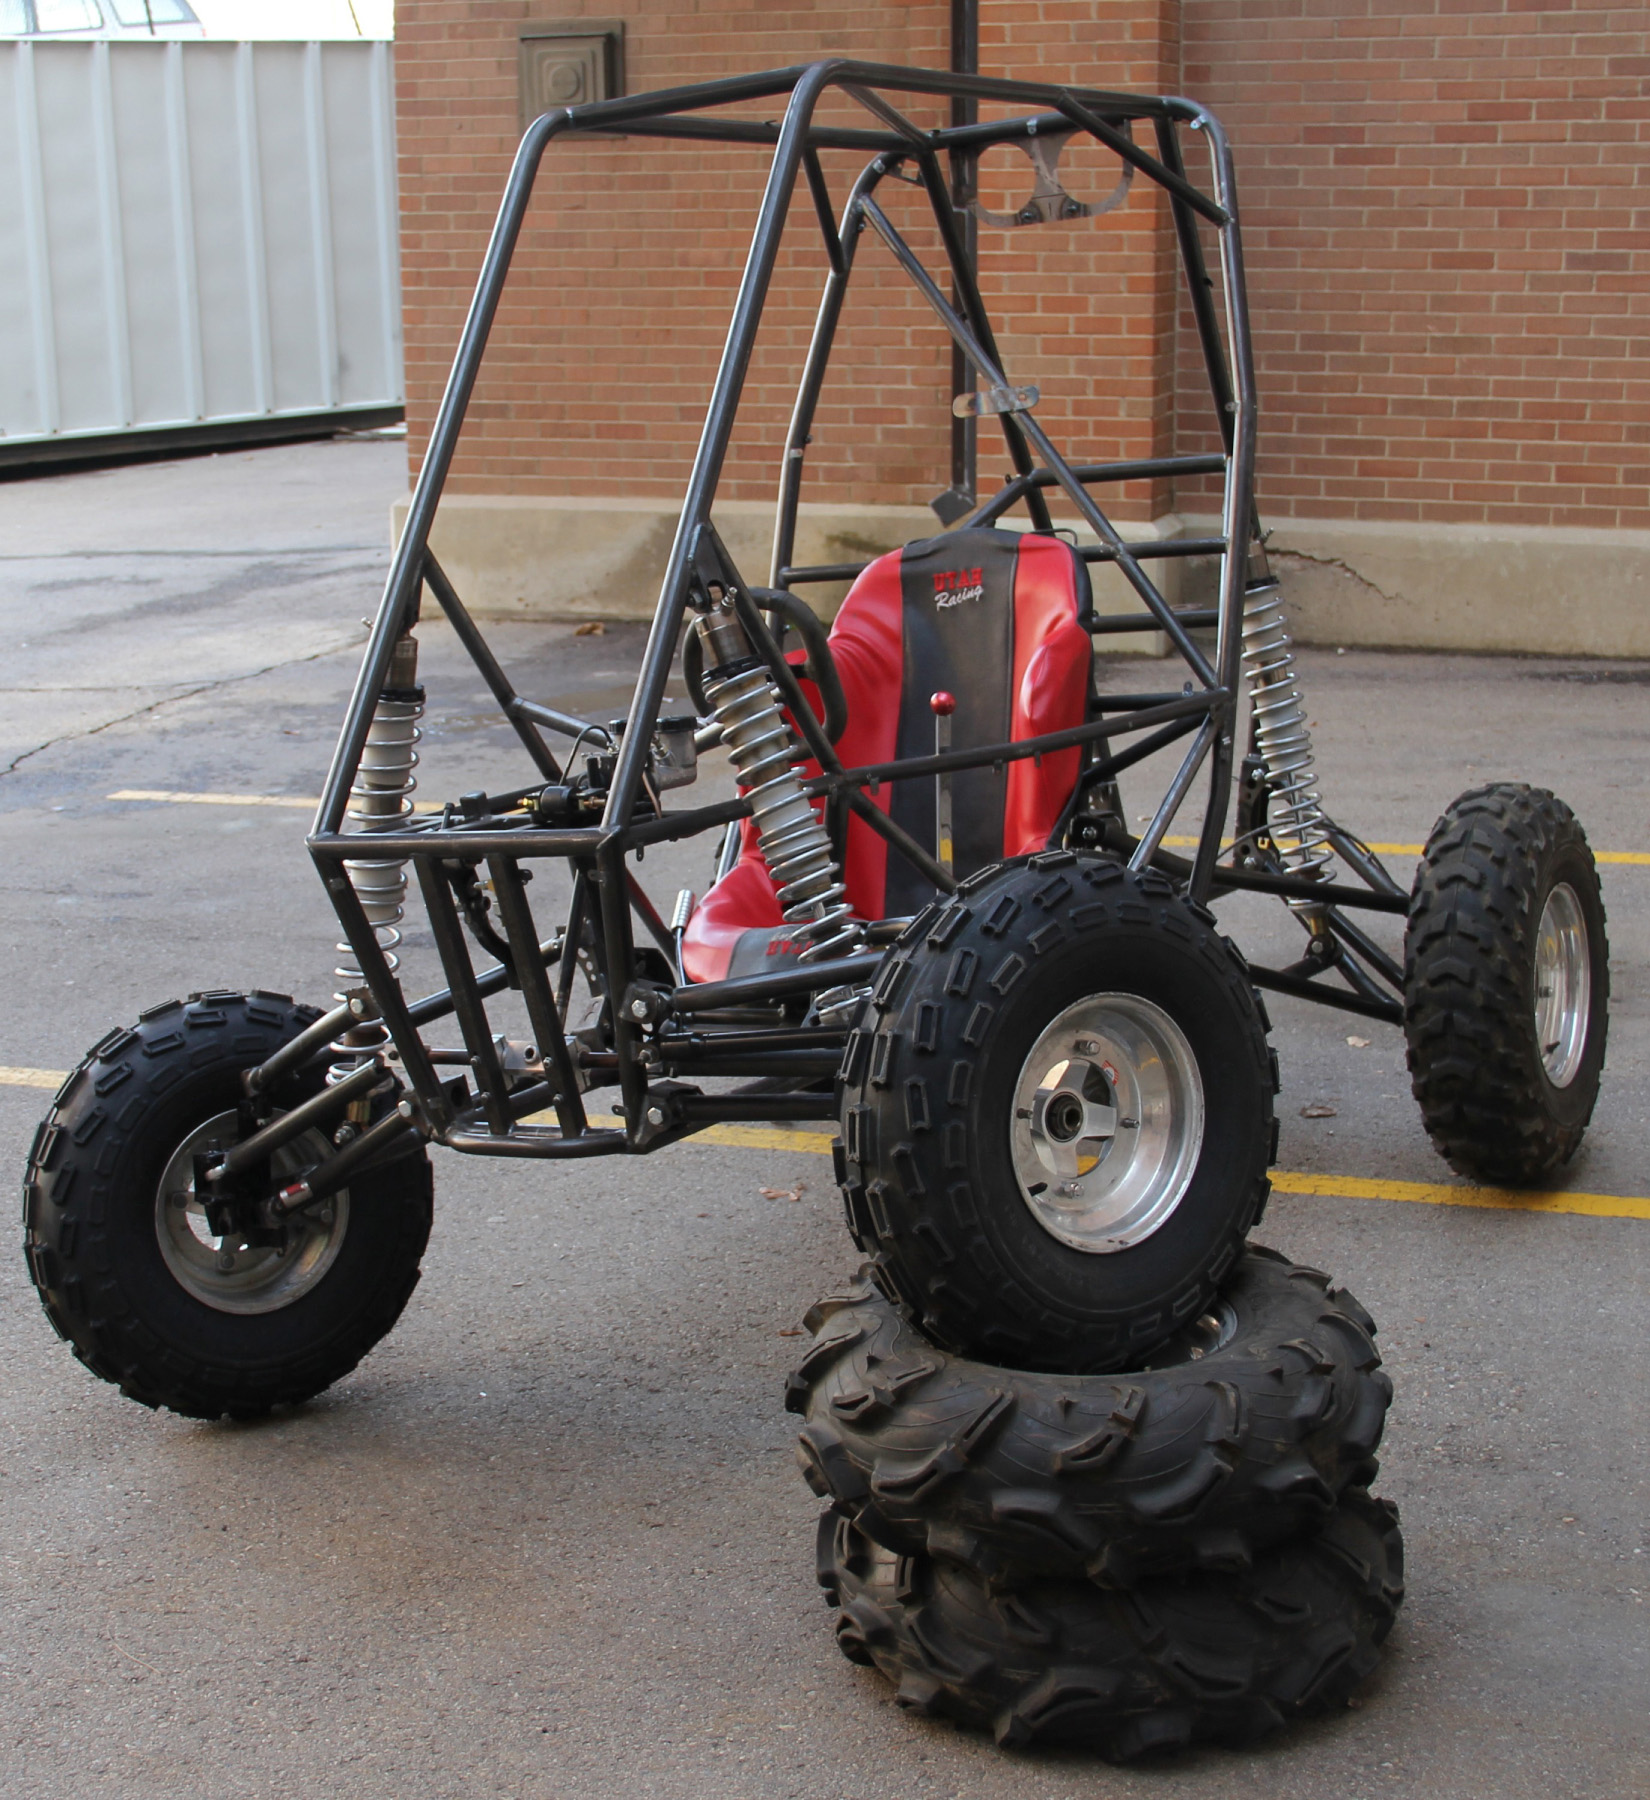 The U of U Department of Mechanical Engineering will hold its 14th annual  Design Day showcase on Tuesday April 19 in the Olpin Student Union. The event is open to the public, who will have an opportunity to attend three different competitions and even try out this vehicle built by SAE Baja 2011.